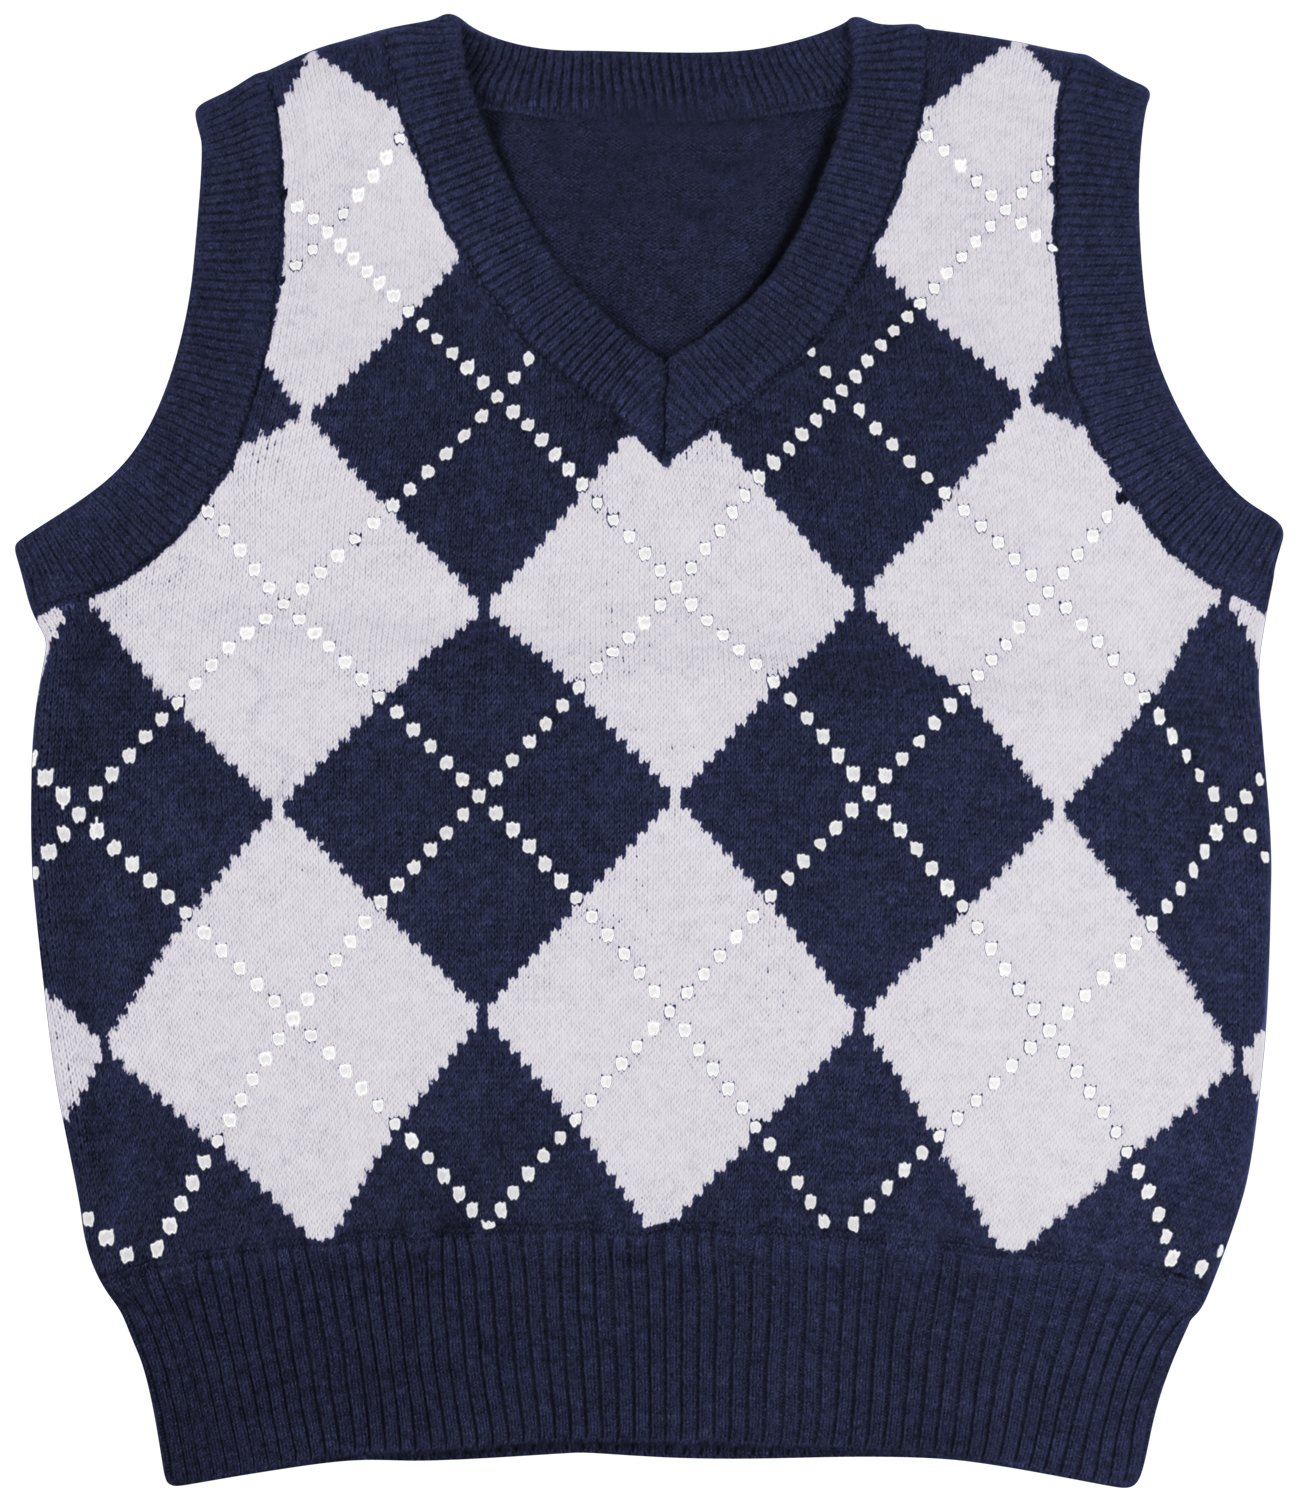 Enimay Kids Knit Sweater Vest V-Neck Argyle Pattern Pullover Navy | Grey 11-12 Year